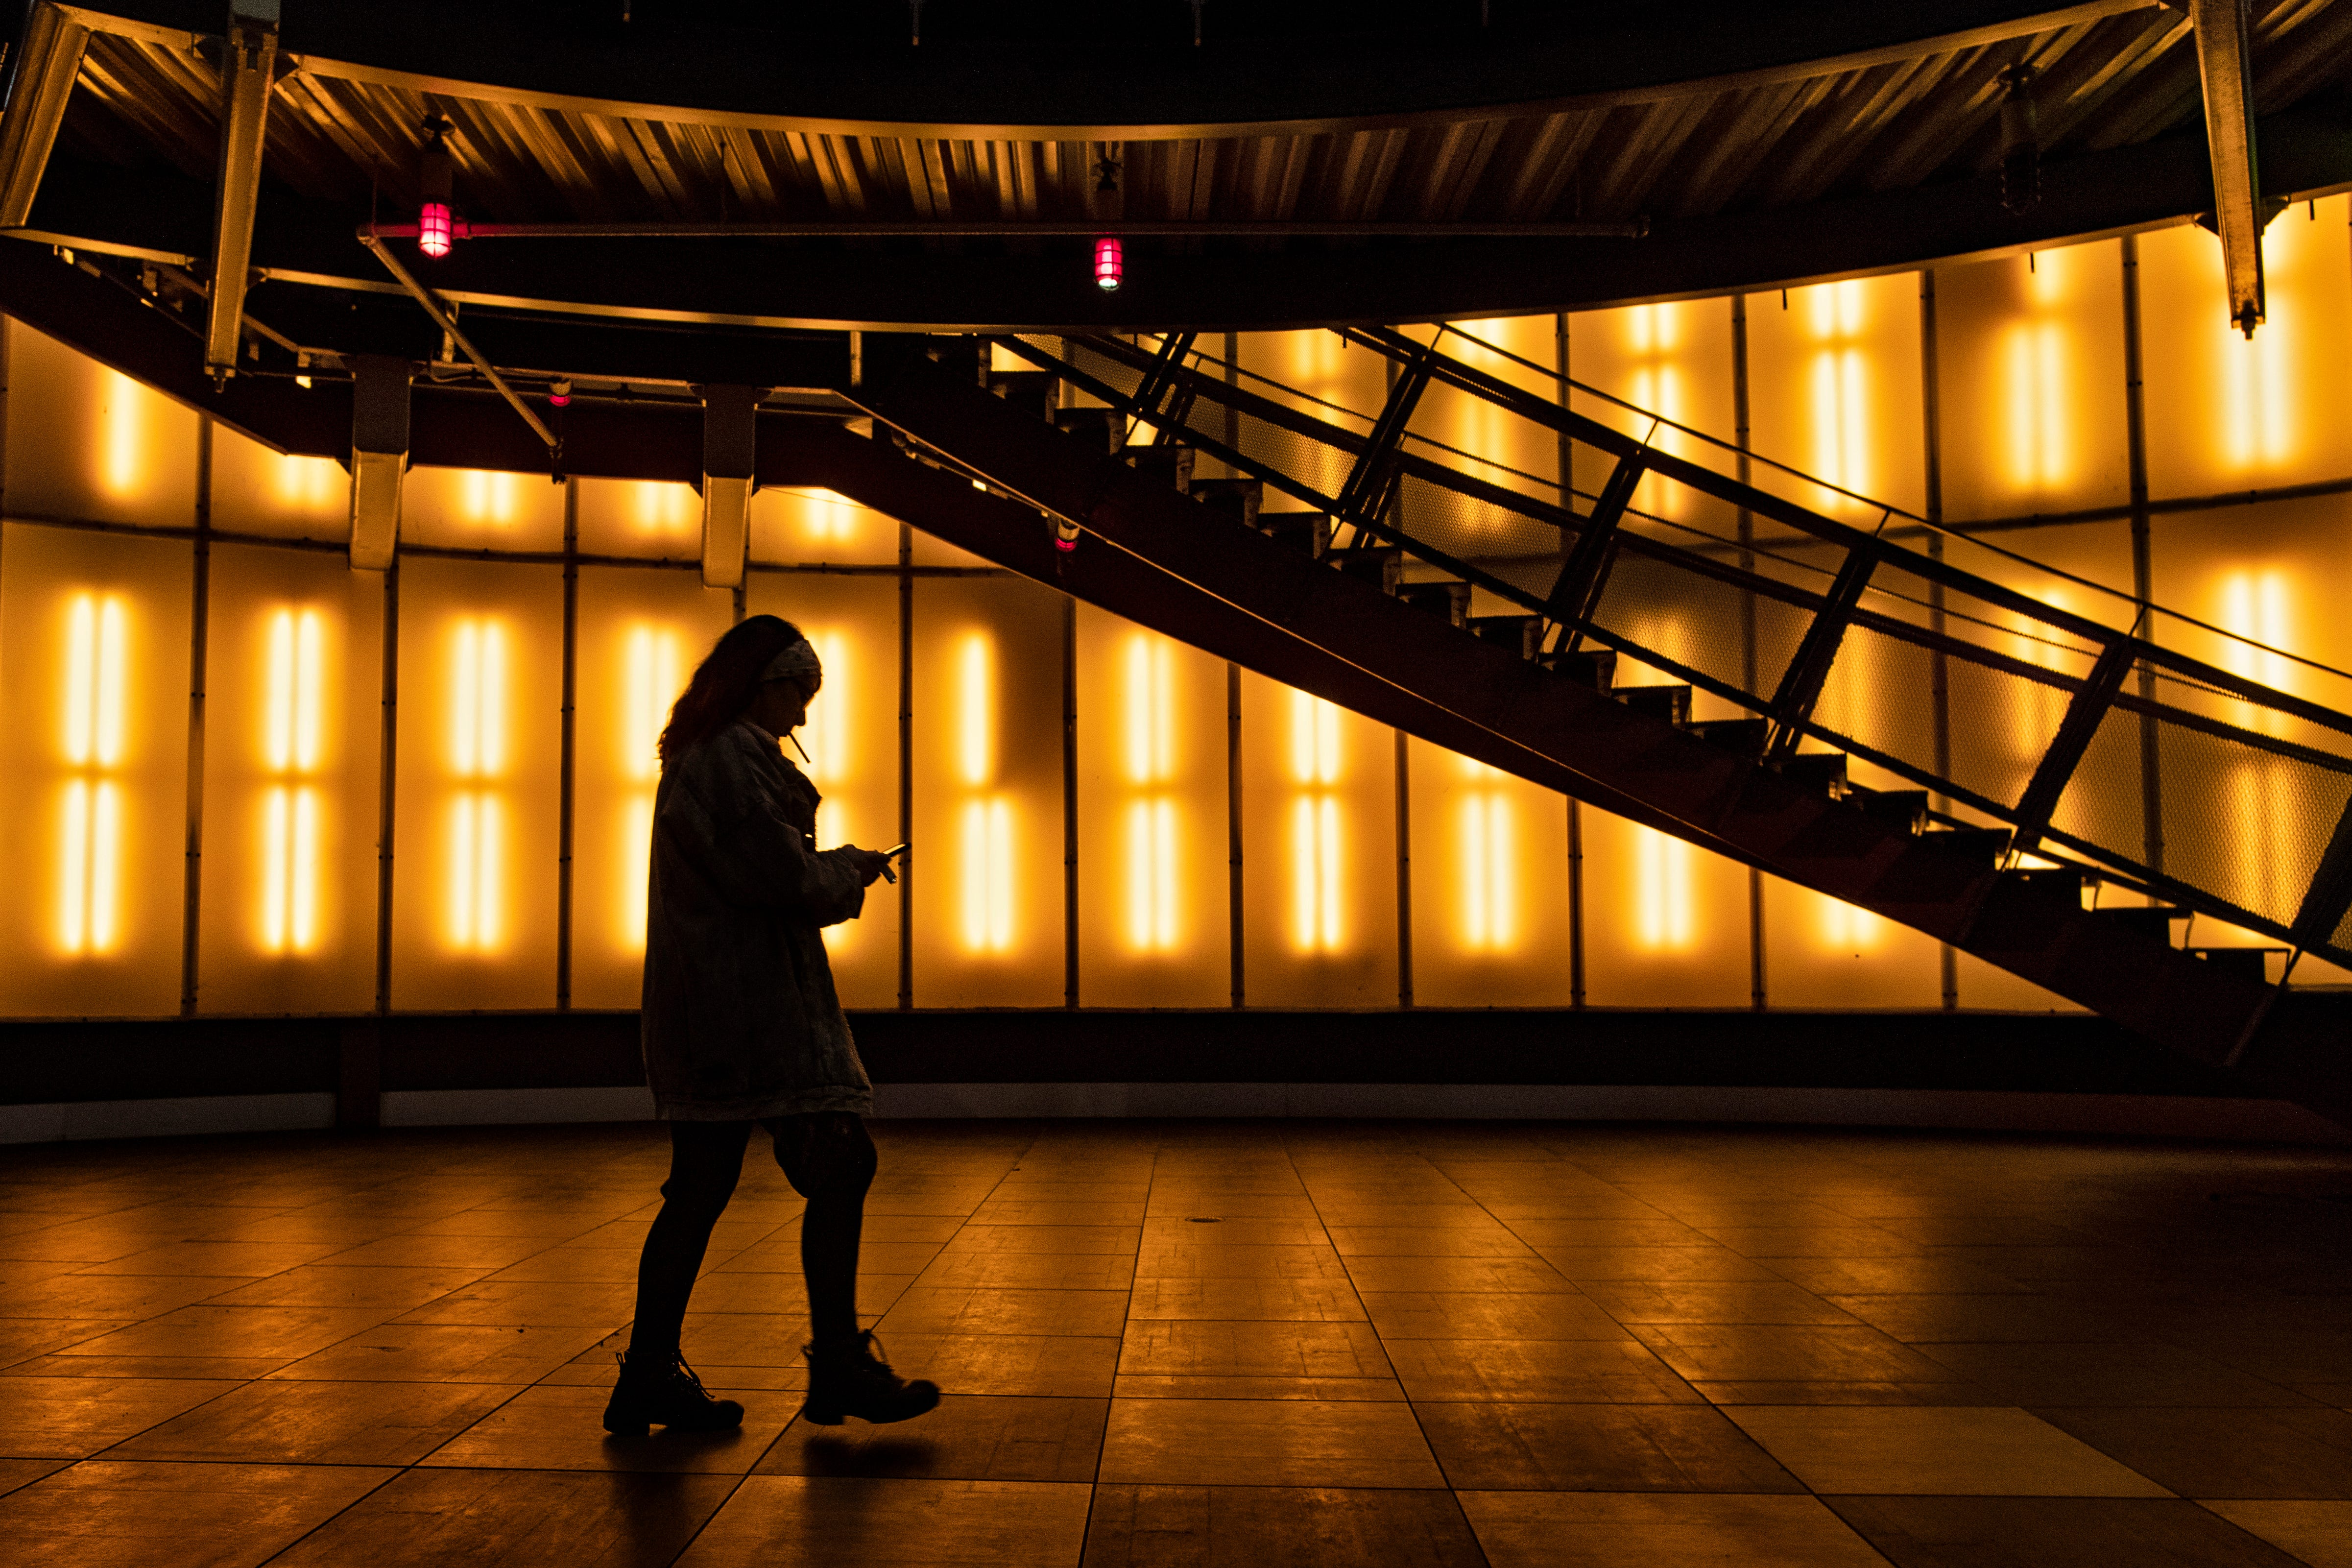 11:07 PM  A Fourth Street Live visitor makes their way past the illuminated staircase on a slow evening on Jan. 13, 2020.